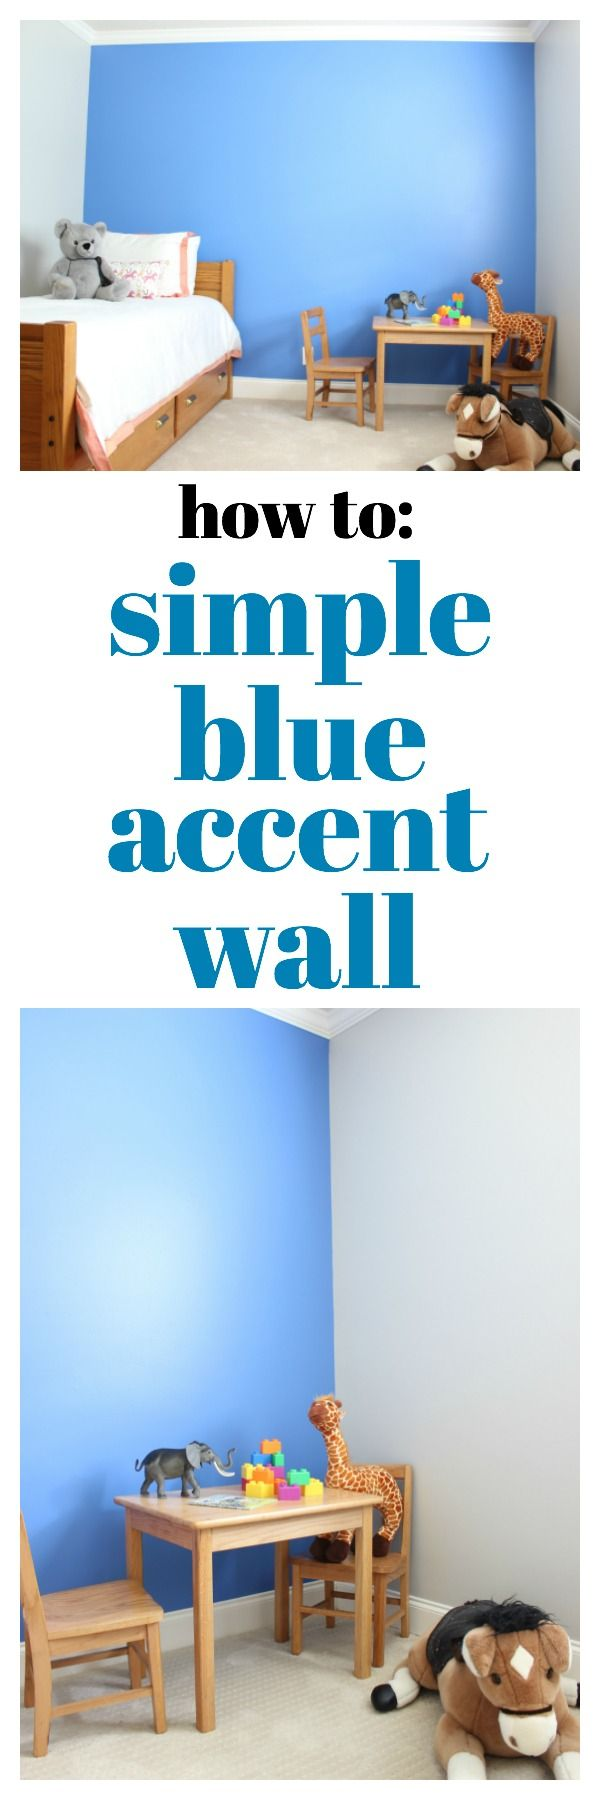 Tutorial for a Simple Blue Accent Wall using Behr's Boat House - great idea for…